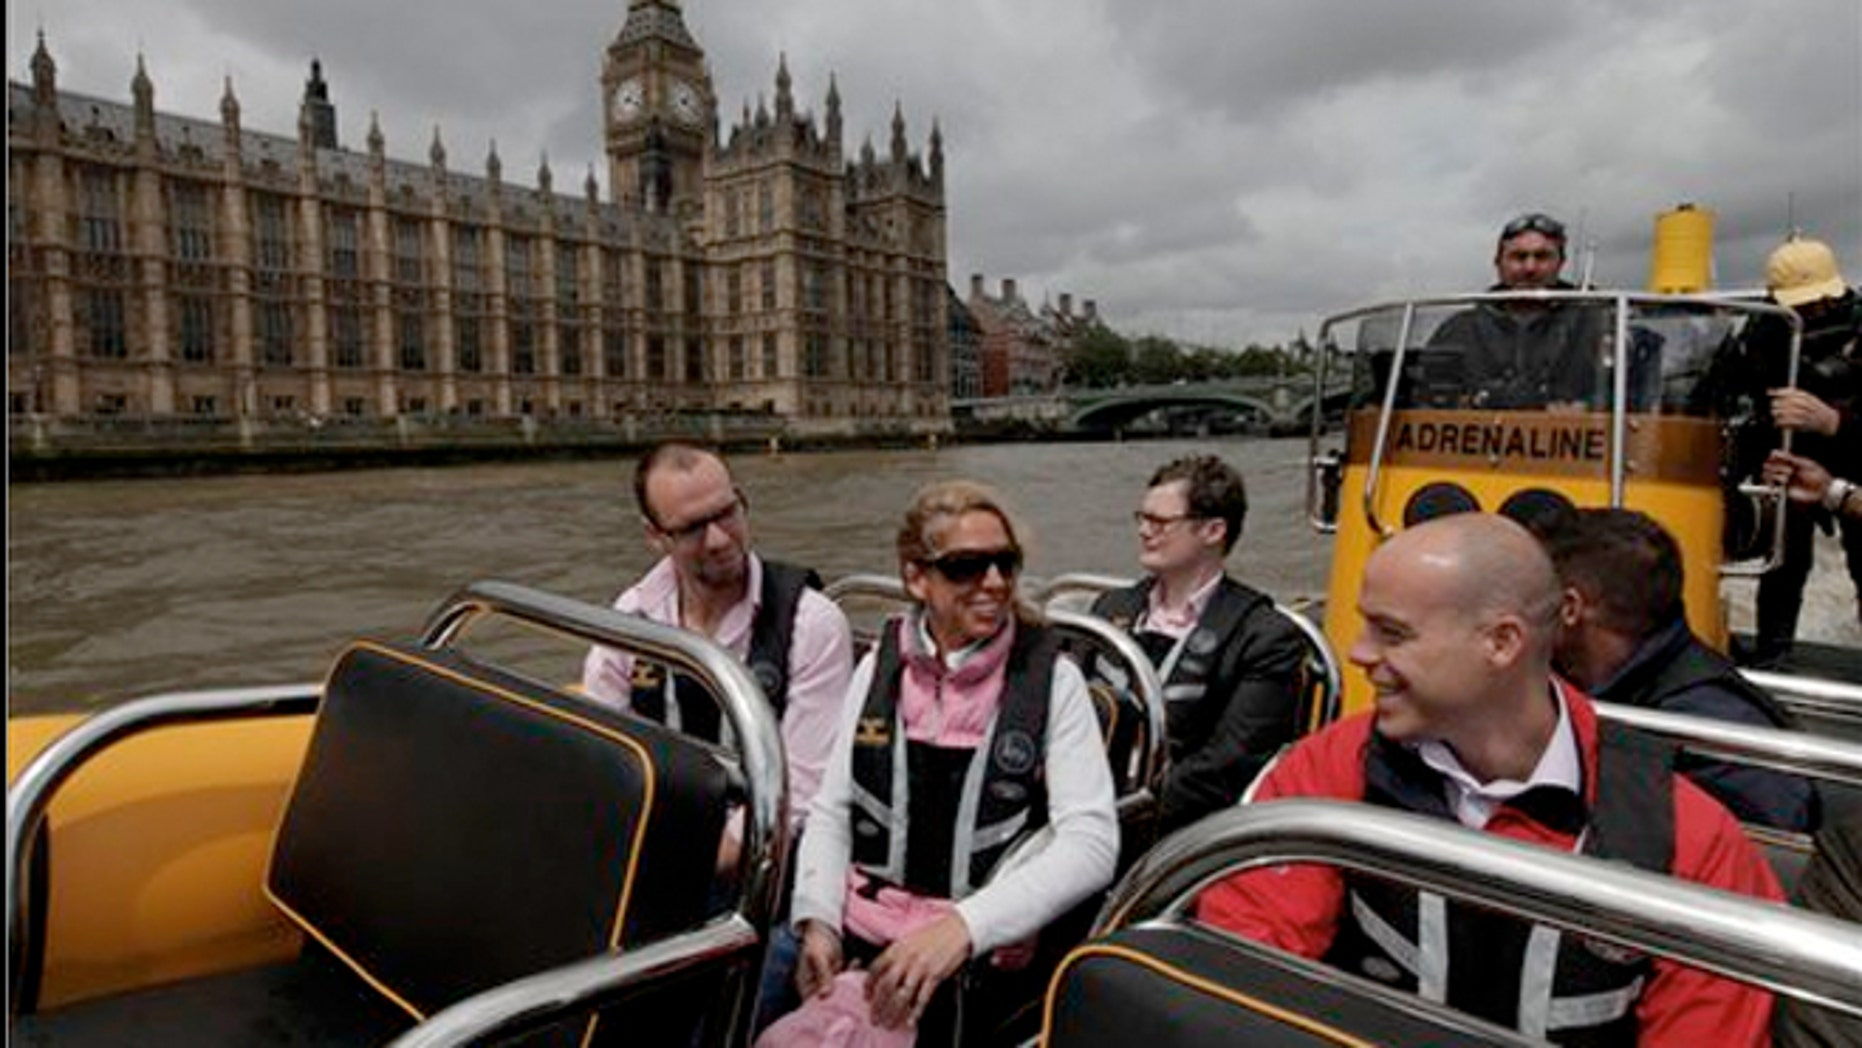 July 4, 2012:  People are seen aboard a high-speed 12-seater rigid inflatable boat, run by the Protection Services International company as it travels past the Palace of Westminster on London's river Thames.